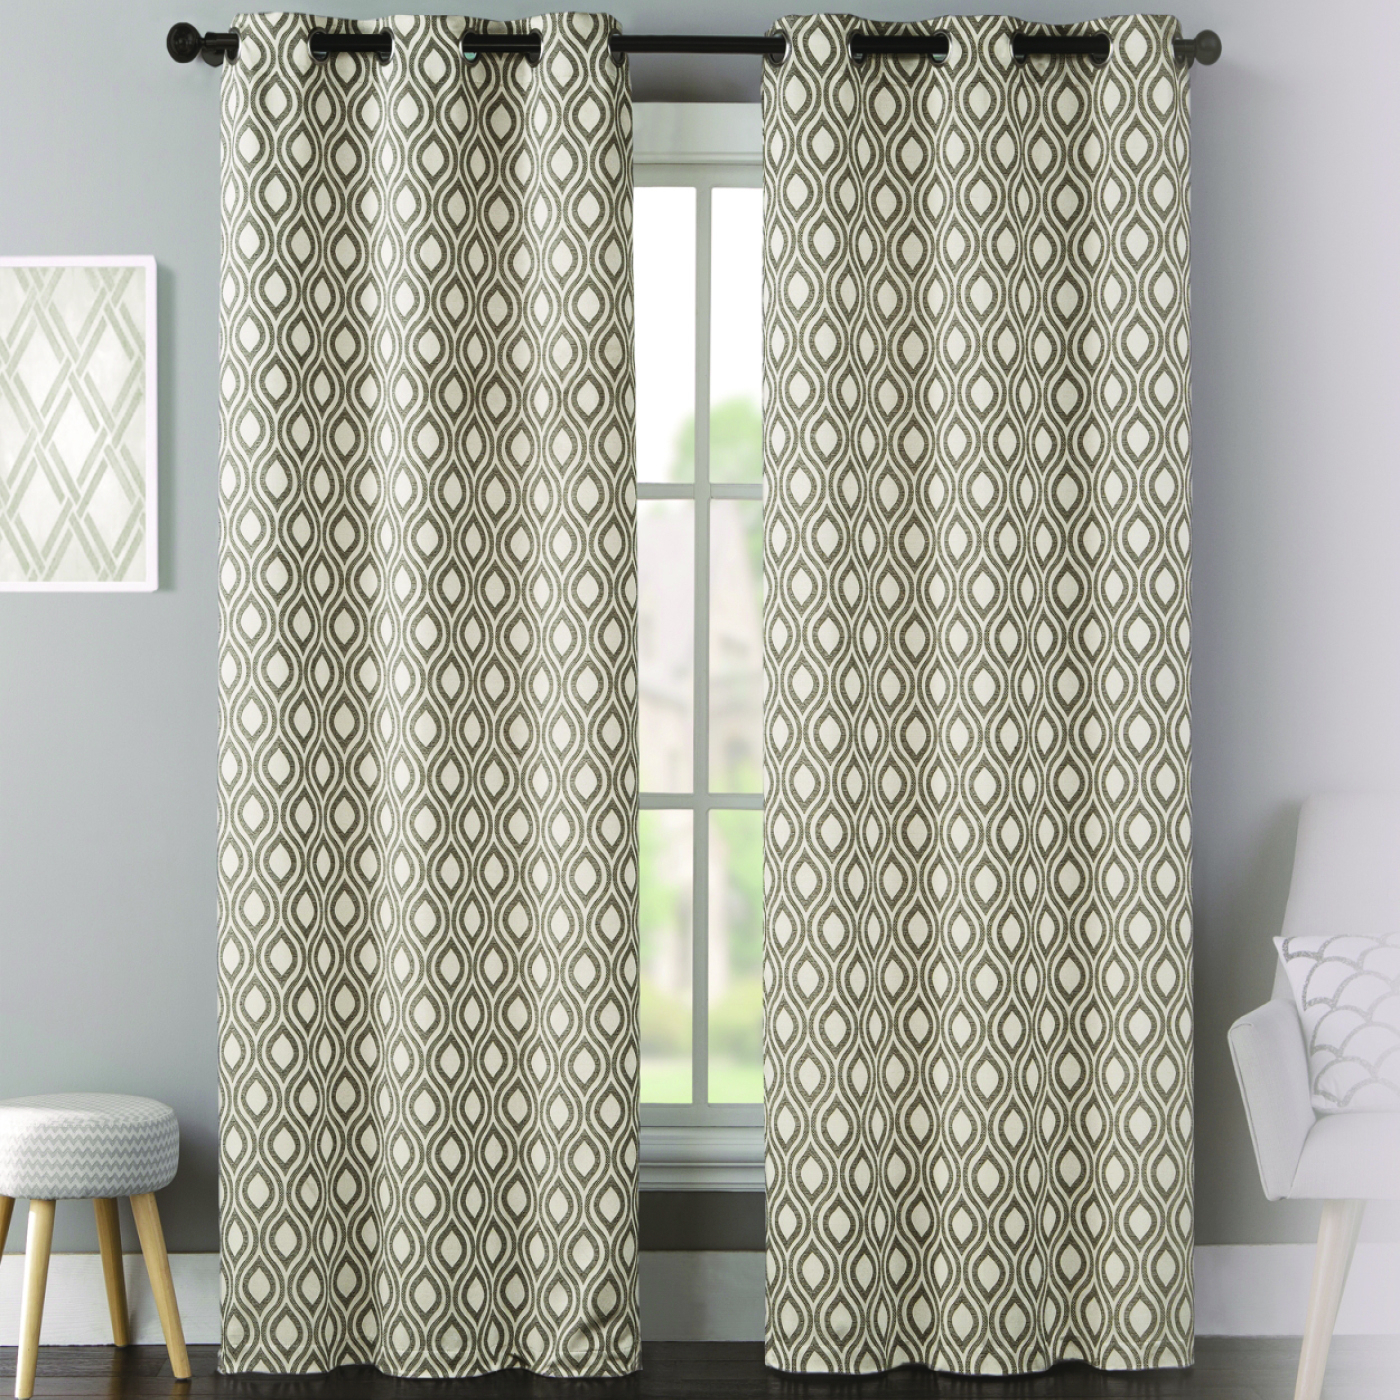 Mystique Lattice Grommet Curtain Panel Pair Pertaining To Intersect Grommet Woven Print Window Curtain Panels (View 7 of 20)